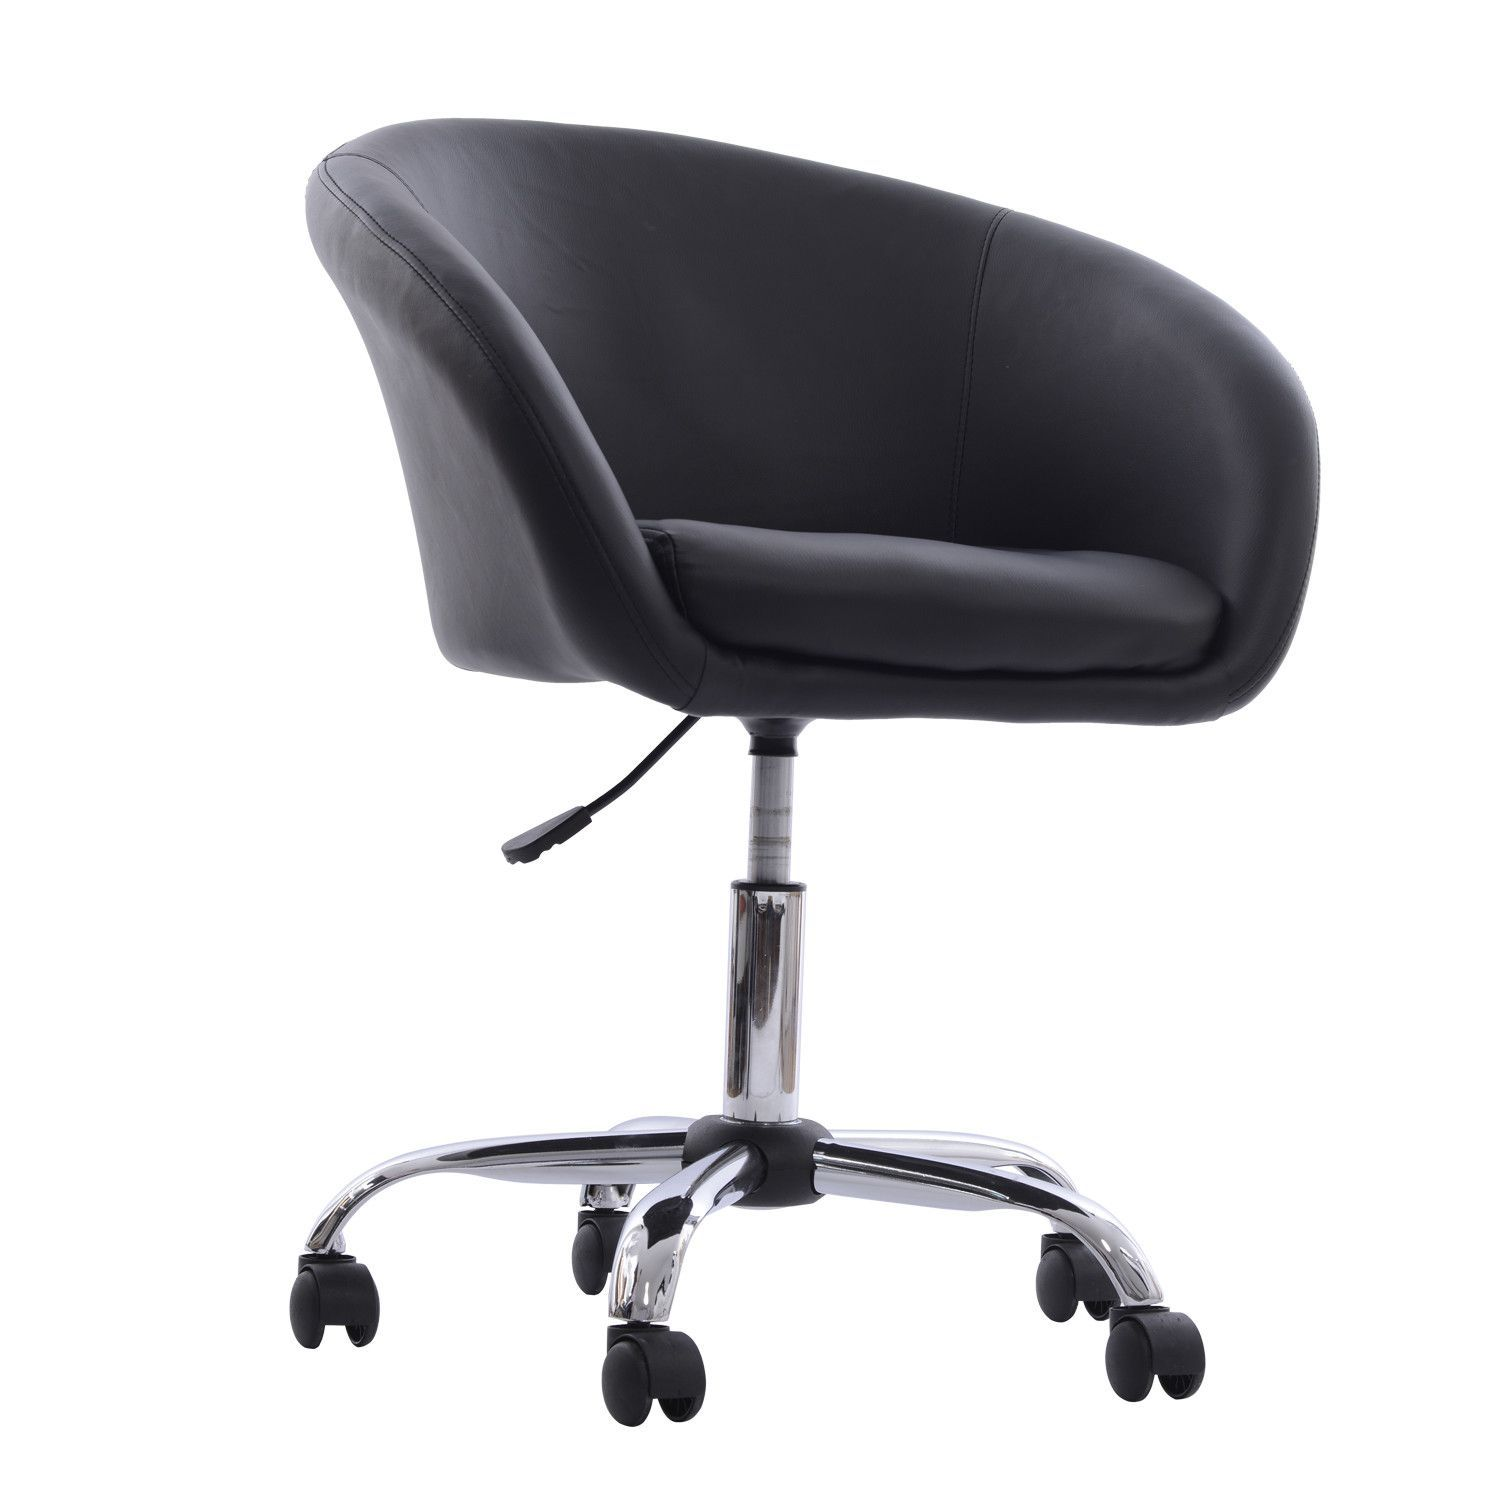 Swivel Tub Chair With Wheels Office Chair Bucket Chairs Desk Chair